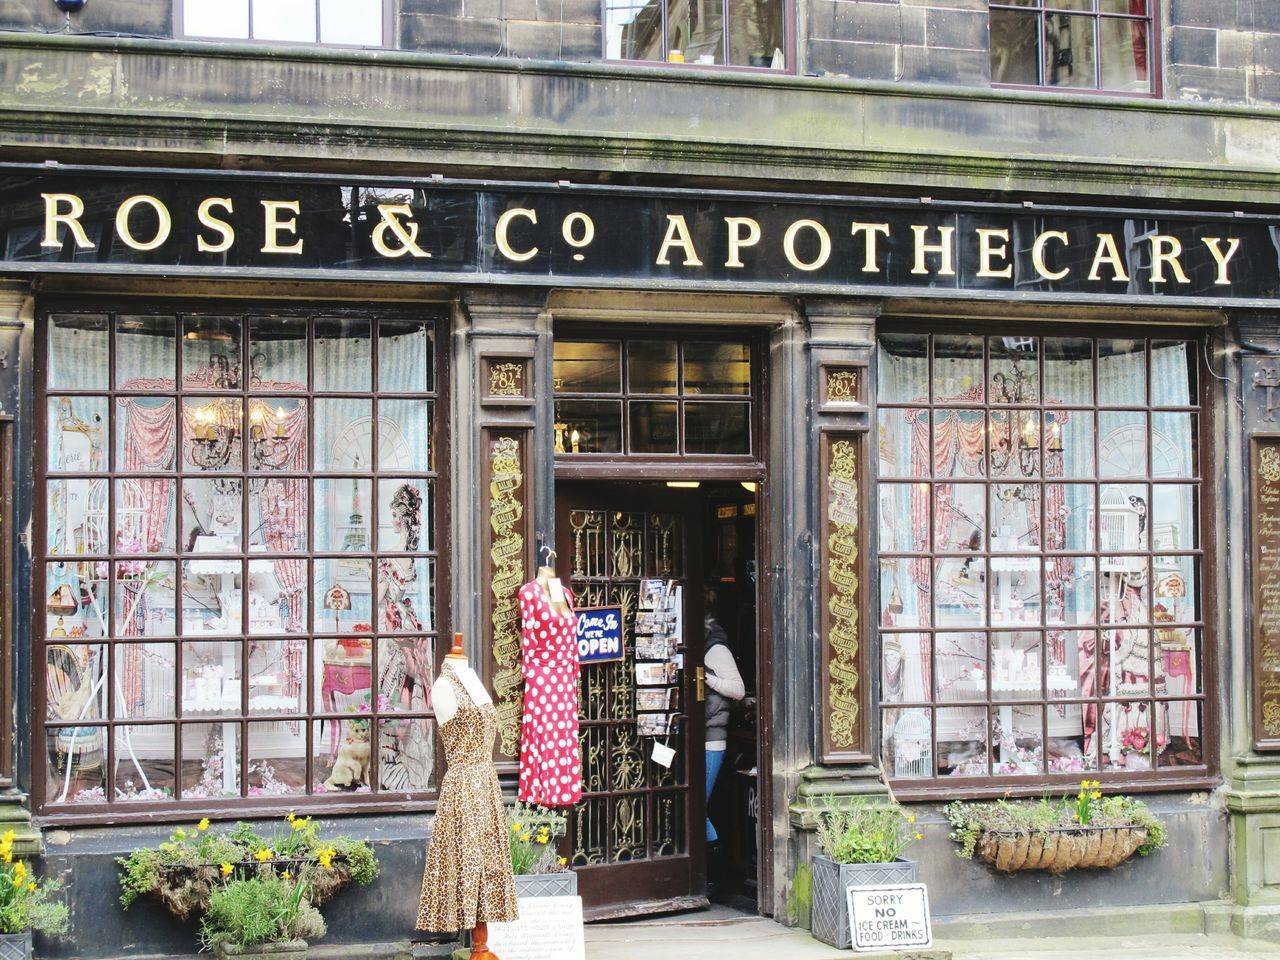 Beautiful shop. Haworth Rose & Co Shop Apothecary Victorian Vintage Vintage Signs Windows Bronte Sisters Tourist Attraction  Old England Quintessential English Scene England Antique Showcase April Shopping Time Architecture Old World Architecture Yorkshire Bronte West Yorkshire Day Out Landscape Street Photography Street